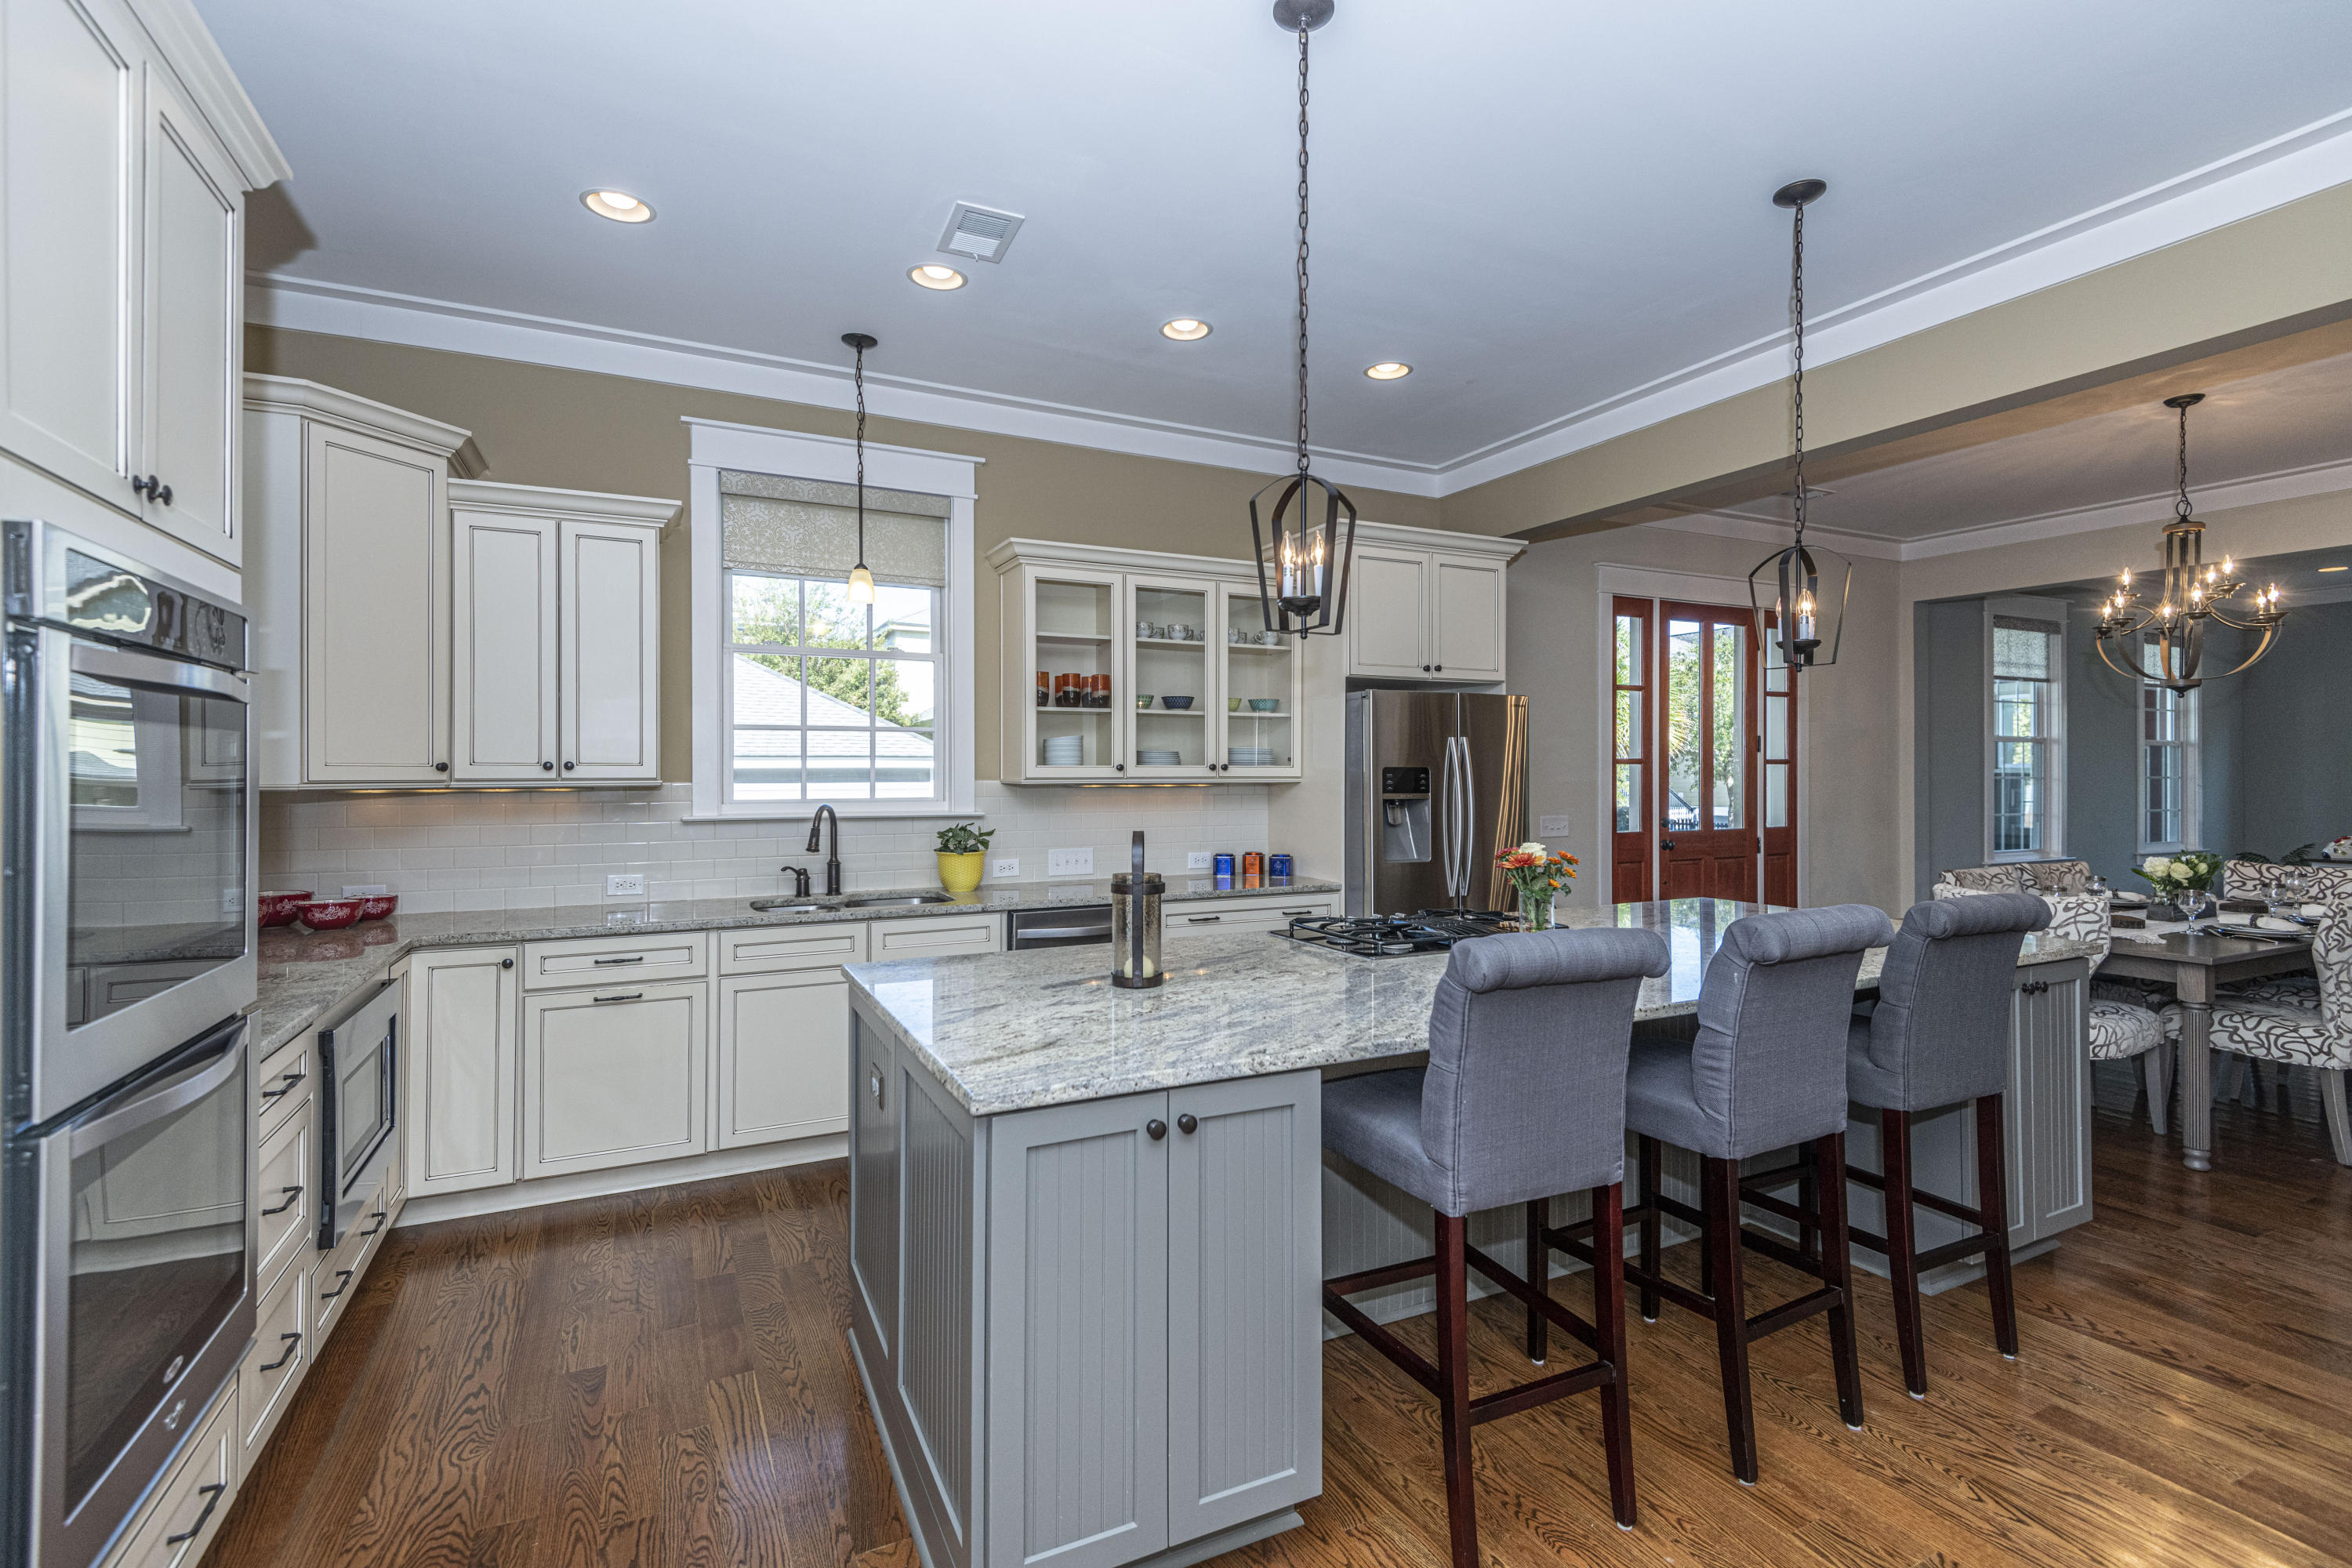 Watermark Homes For Sale - 1401 Lettered Olive, Mount Pleasant, SC - 3